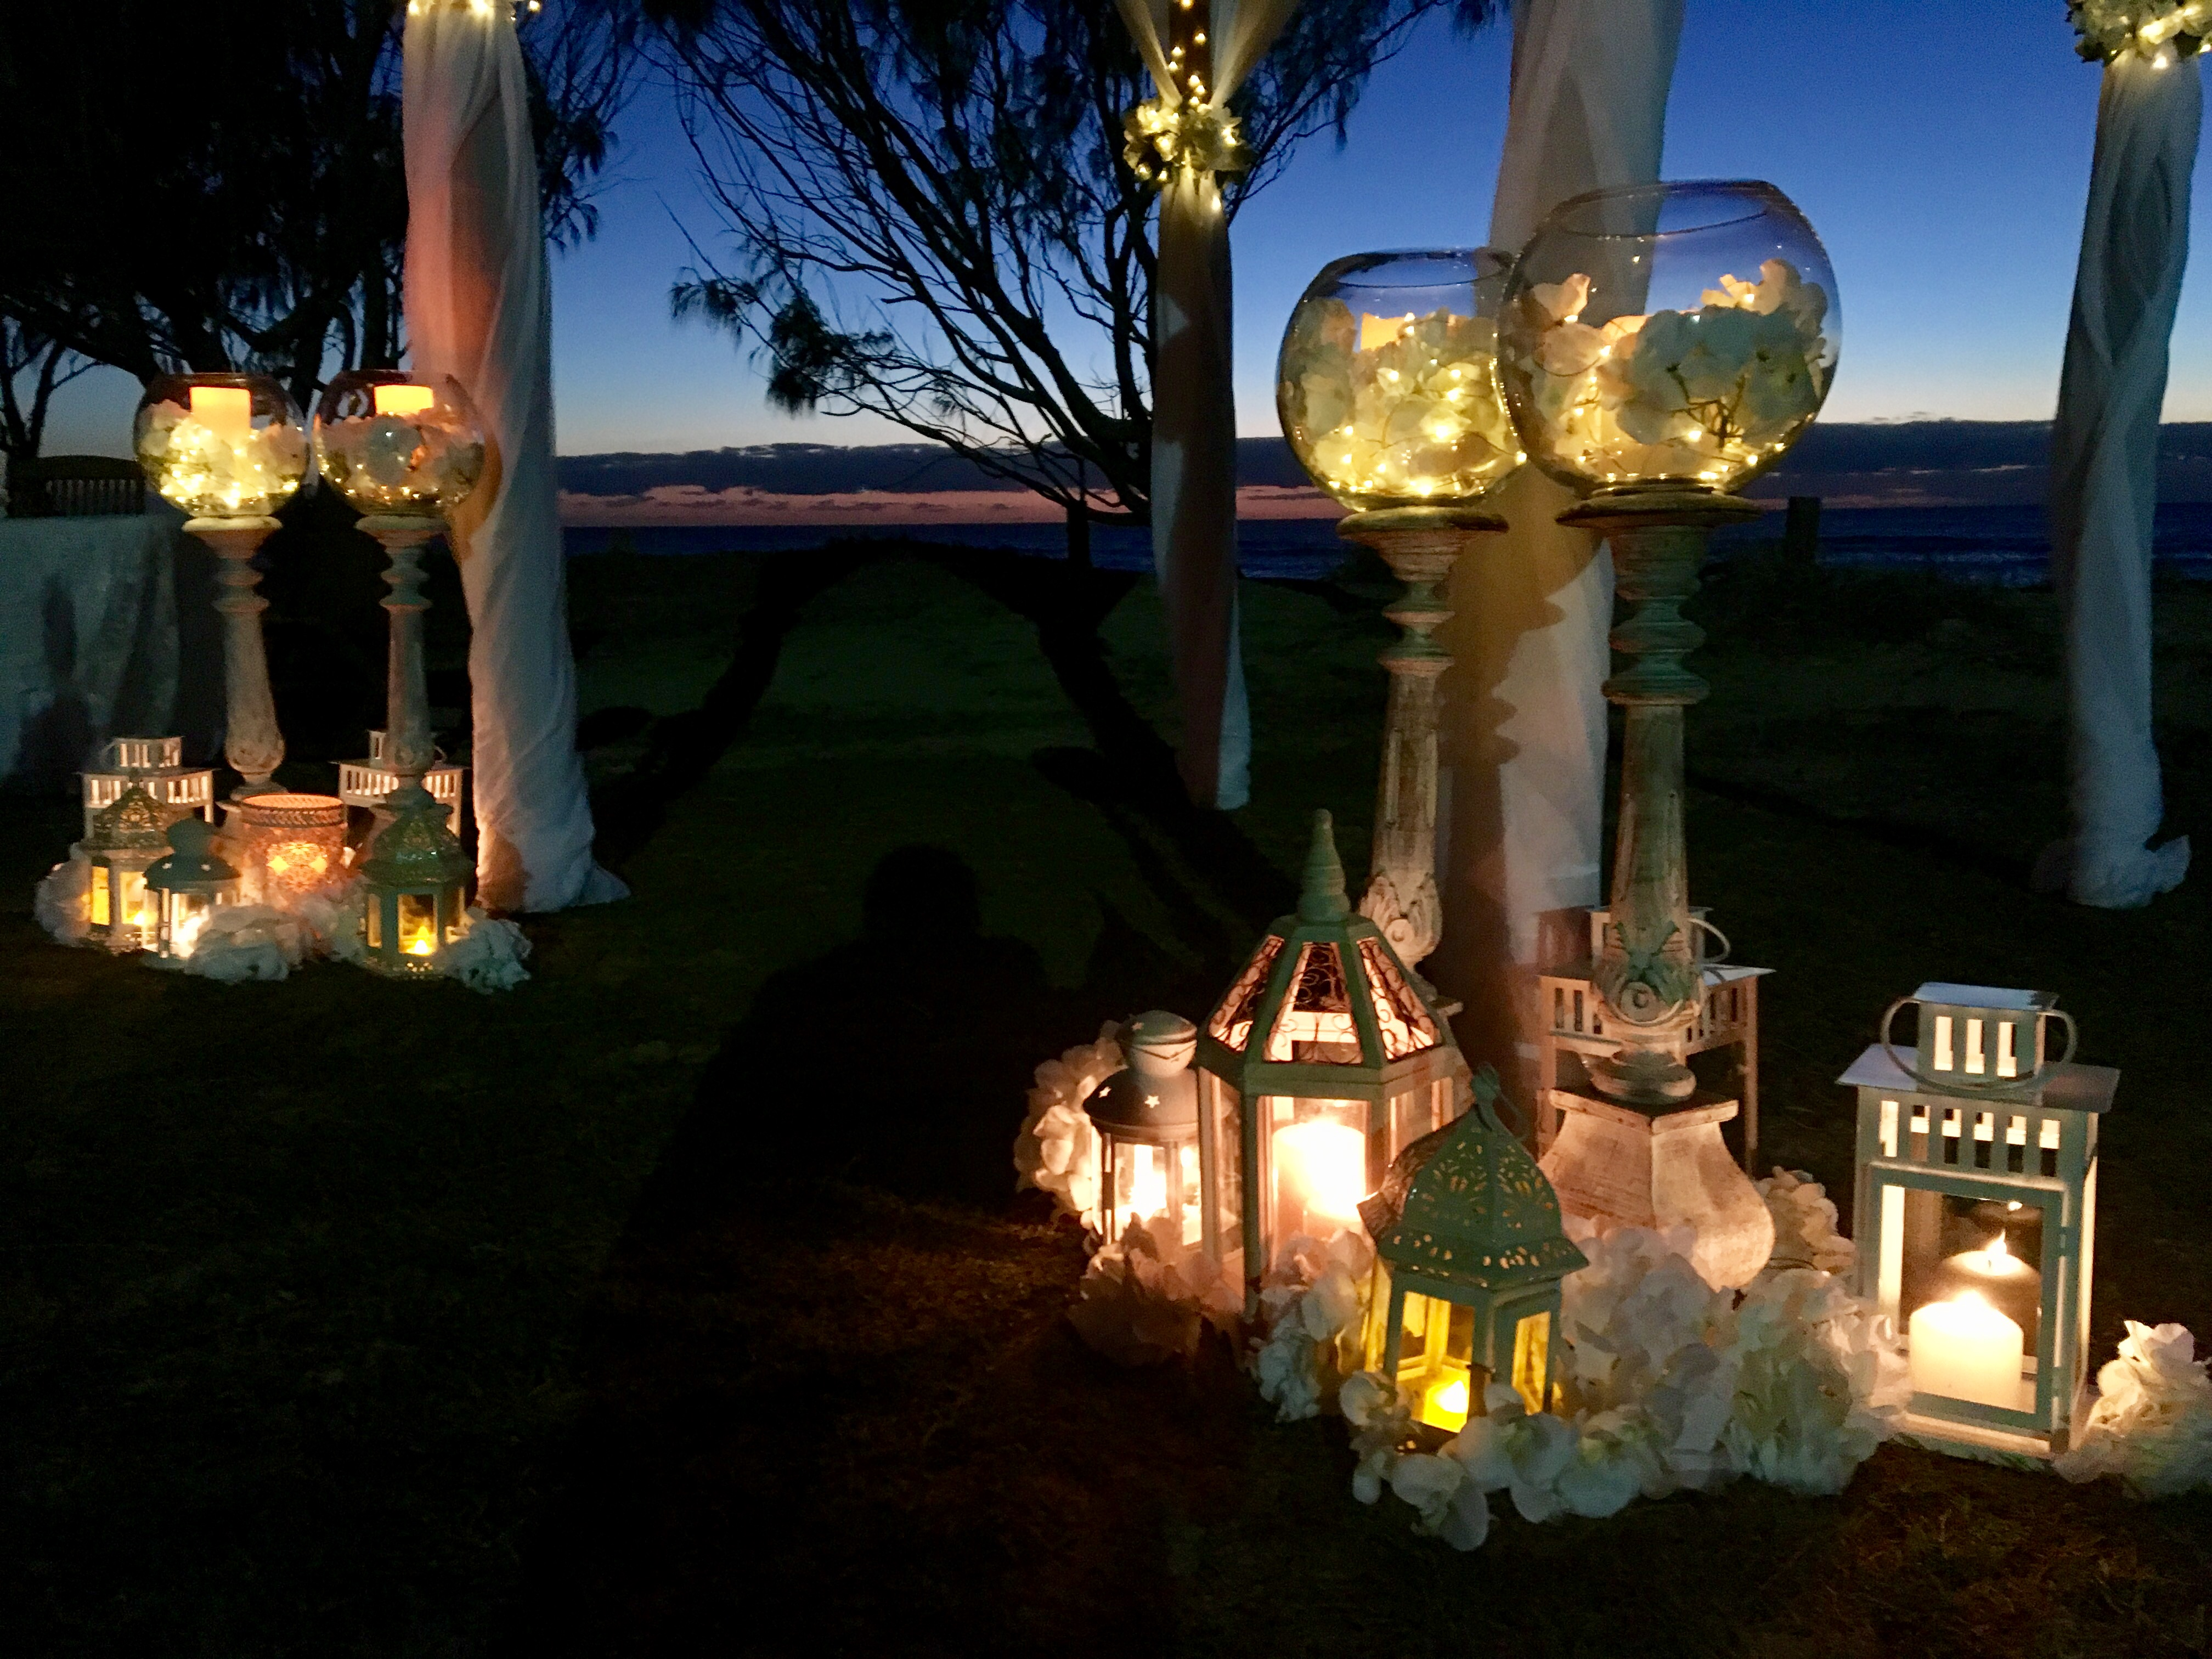 sunrise_wedding_candles_lights.JPG